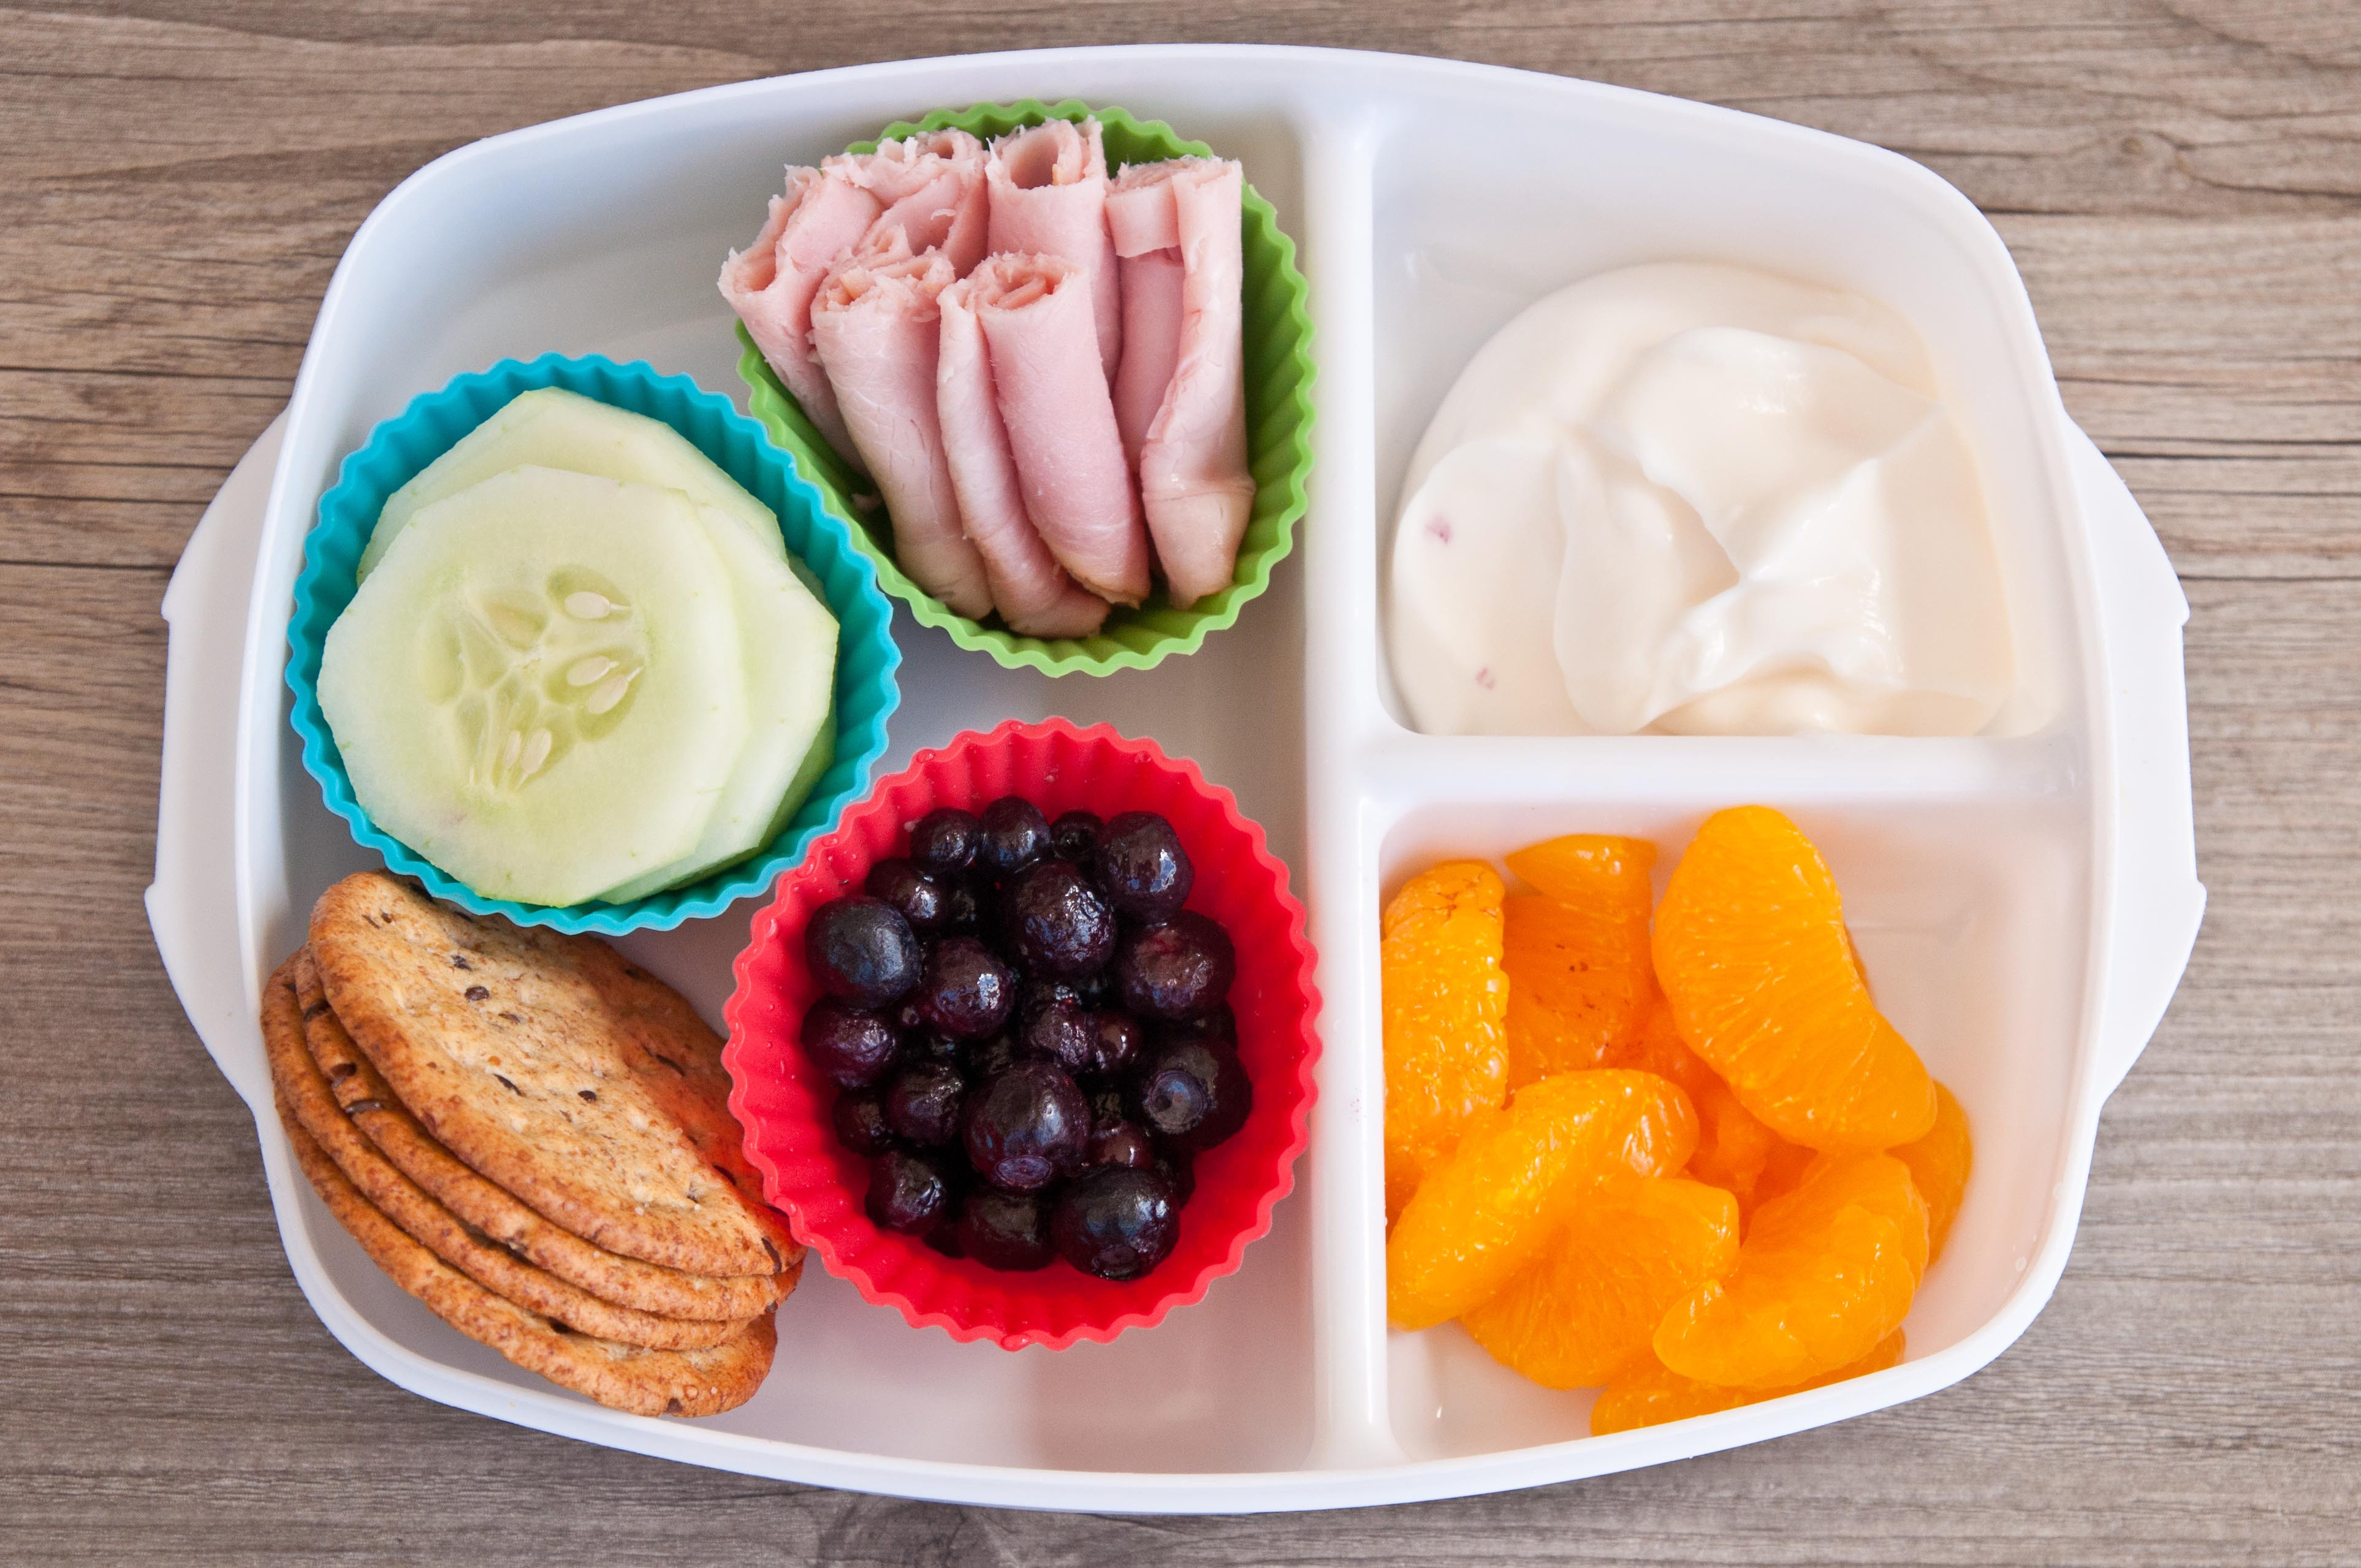 Healthy Breakfast For Kids Before School  School Lunch Versus Packed Lunch Interesting Research and